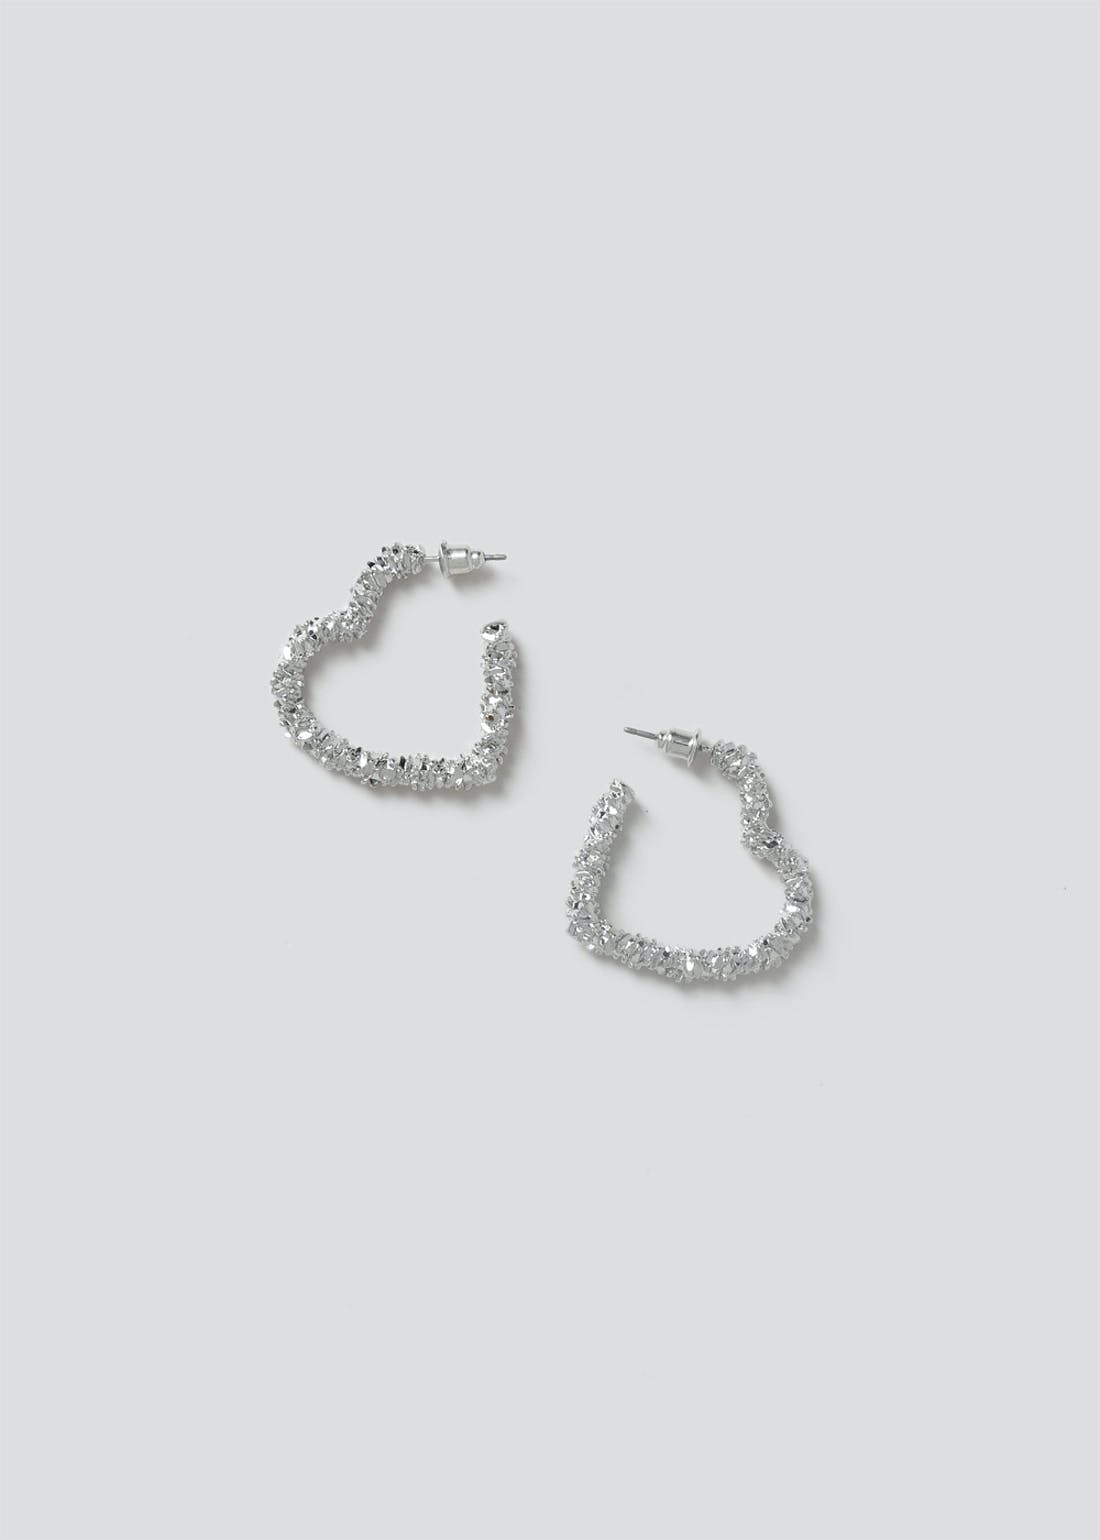 Crushed Foil Heart Drop Earrings.